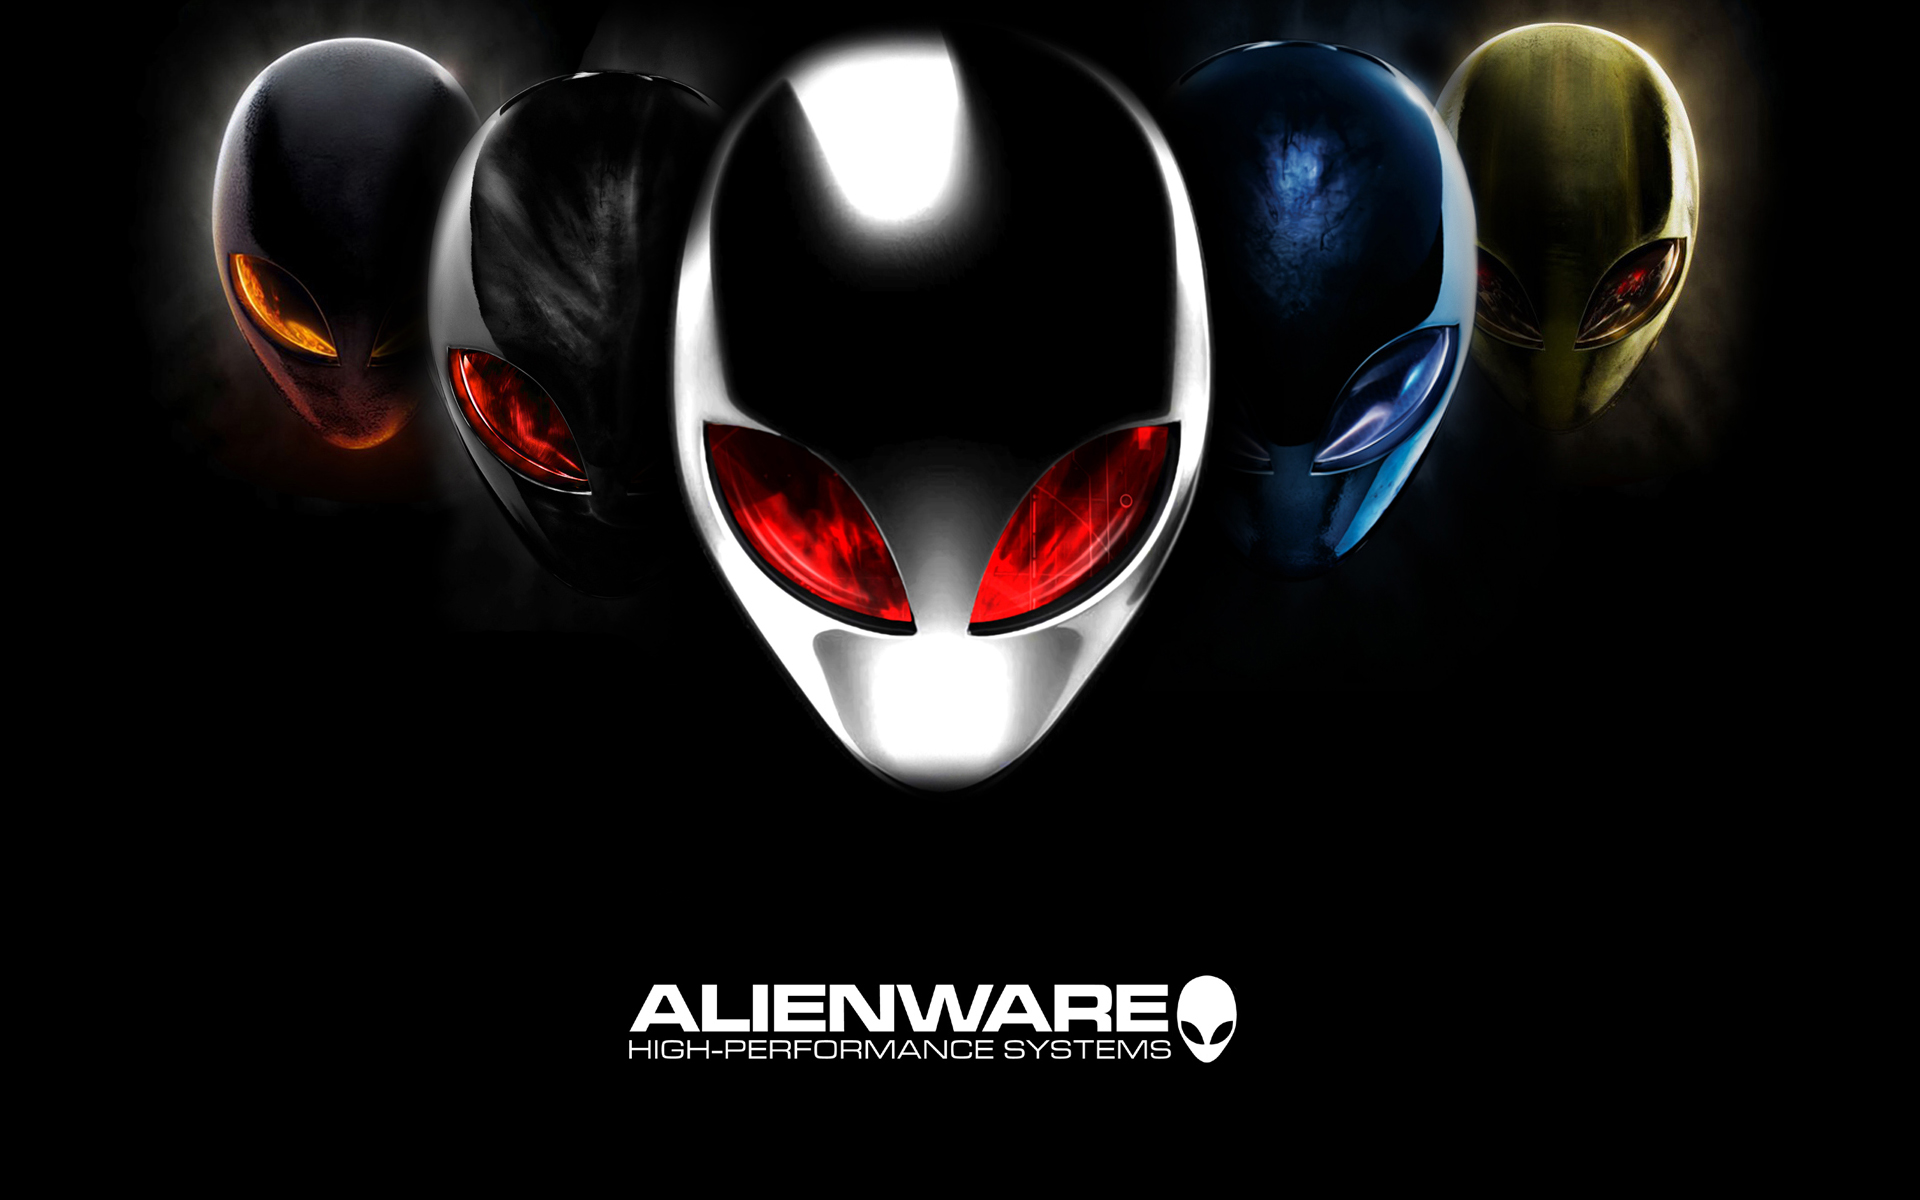 alienware wallpaper 1920x1200 Car Pictures 1920x1200